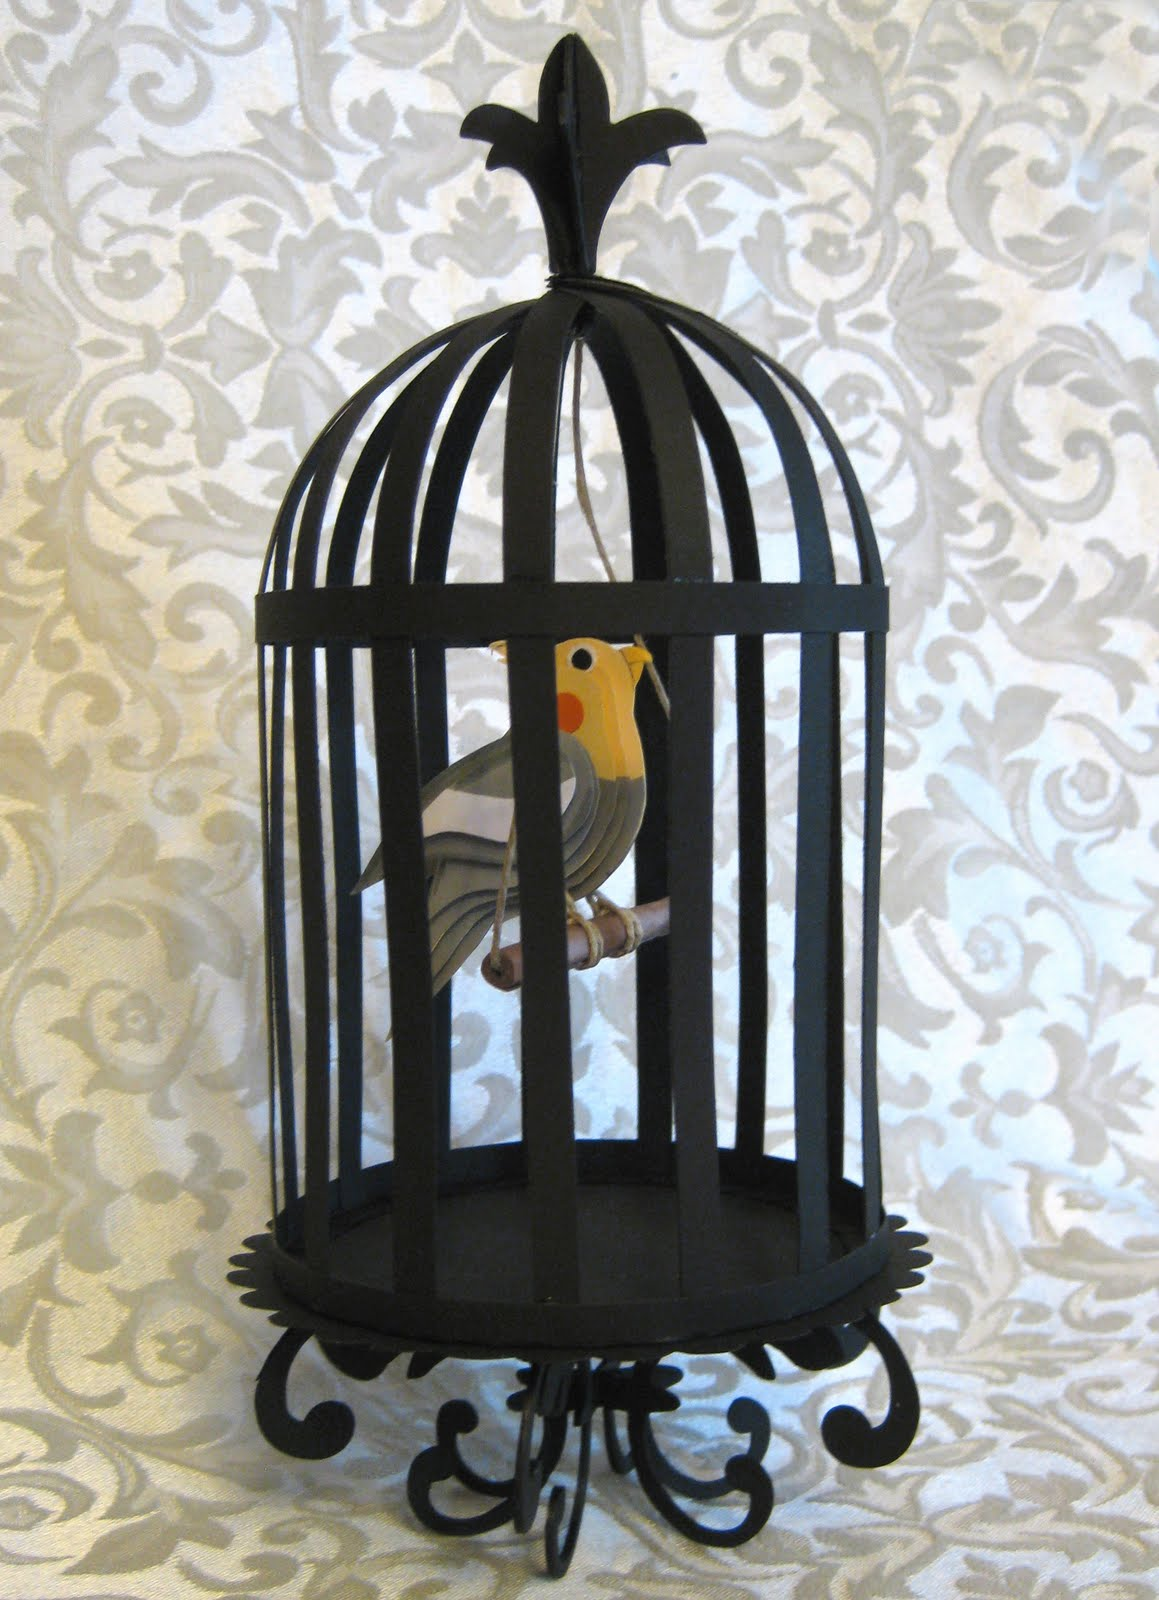 3 D Bird In A Cage Half Price